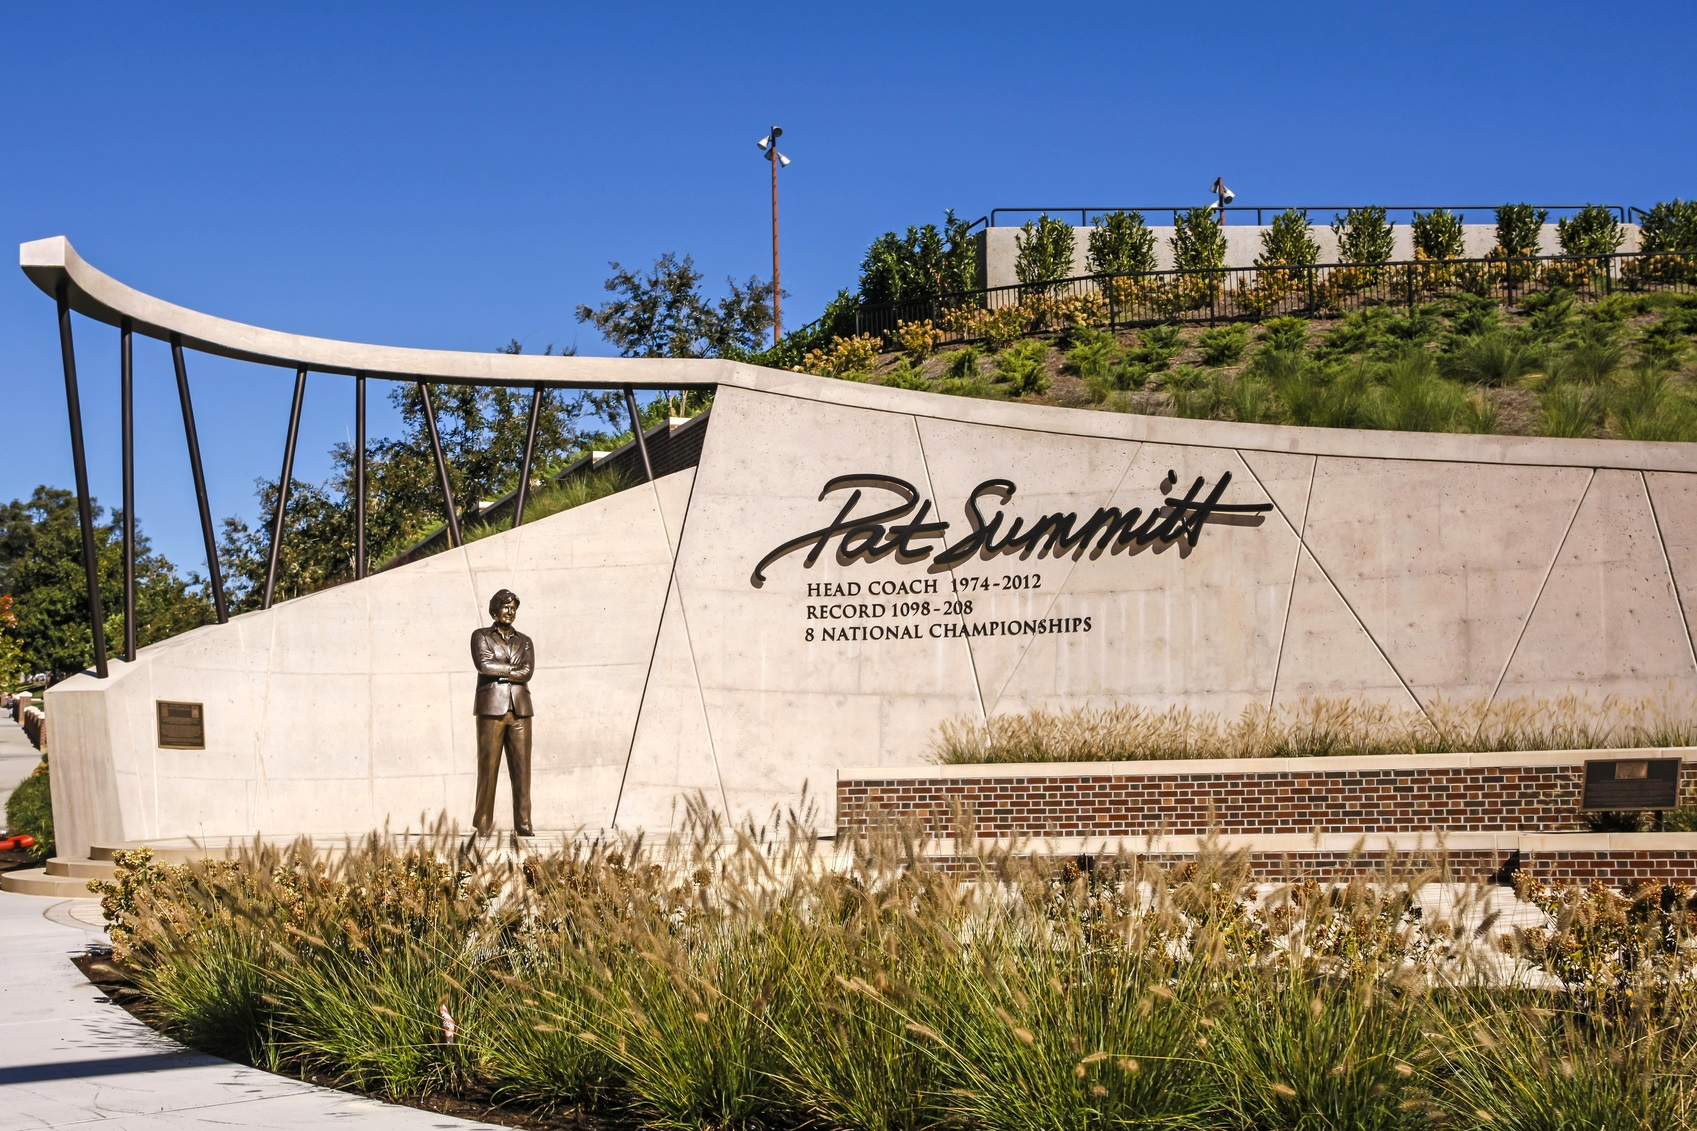 Pat Summitt Dedication Plaza